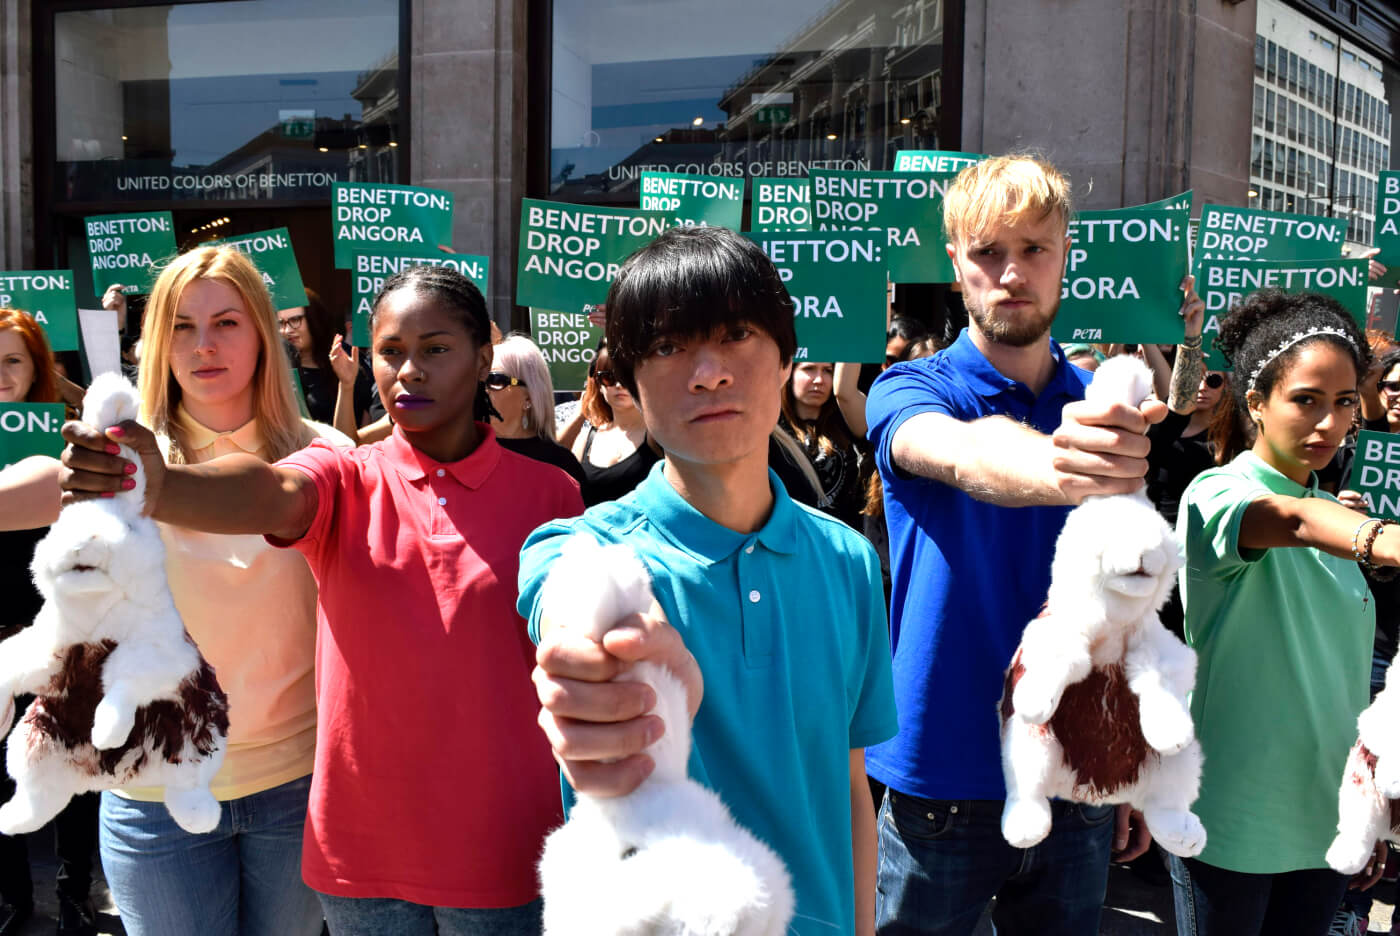 Protest at Benetton